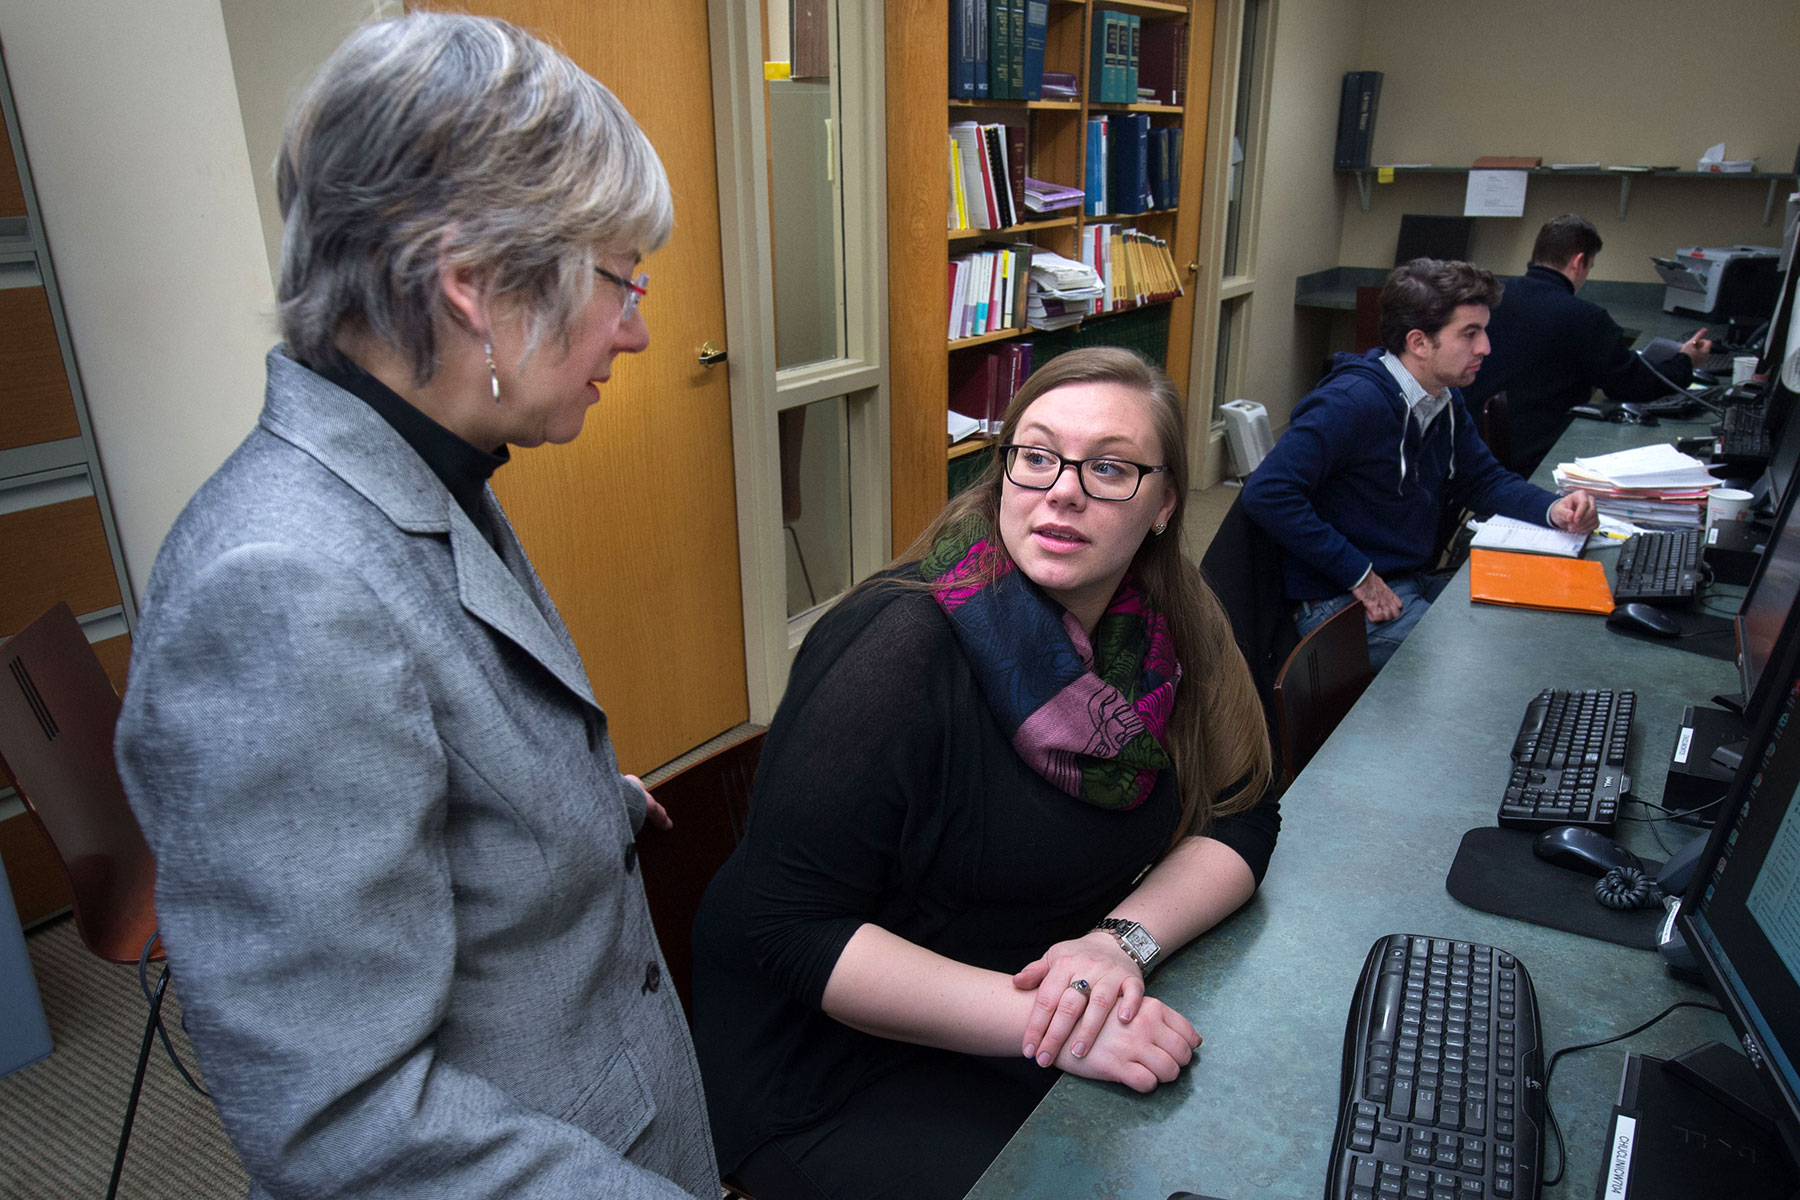 Faculty and student discuss law school pro bono programs